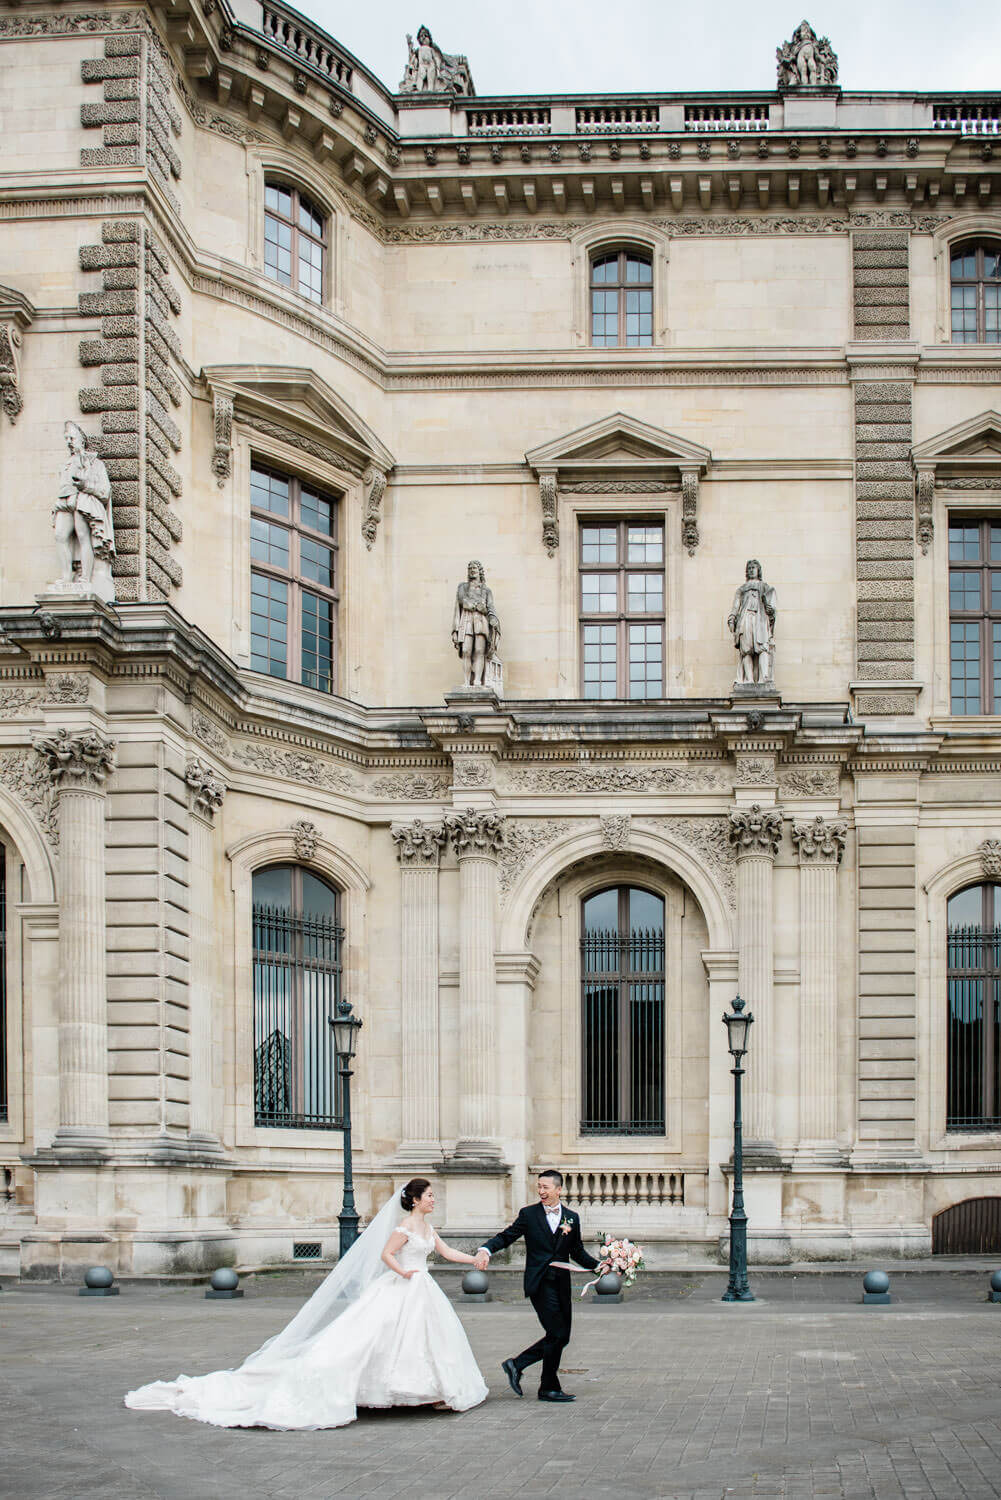 Elopement in Paris photography - a bride and groom run in the streets of Paris